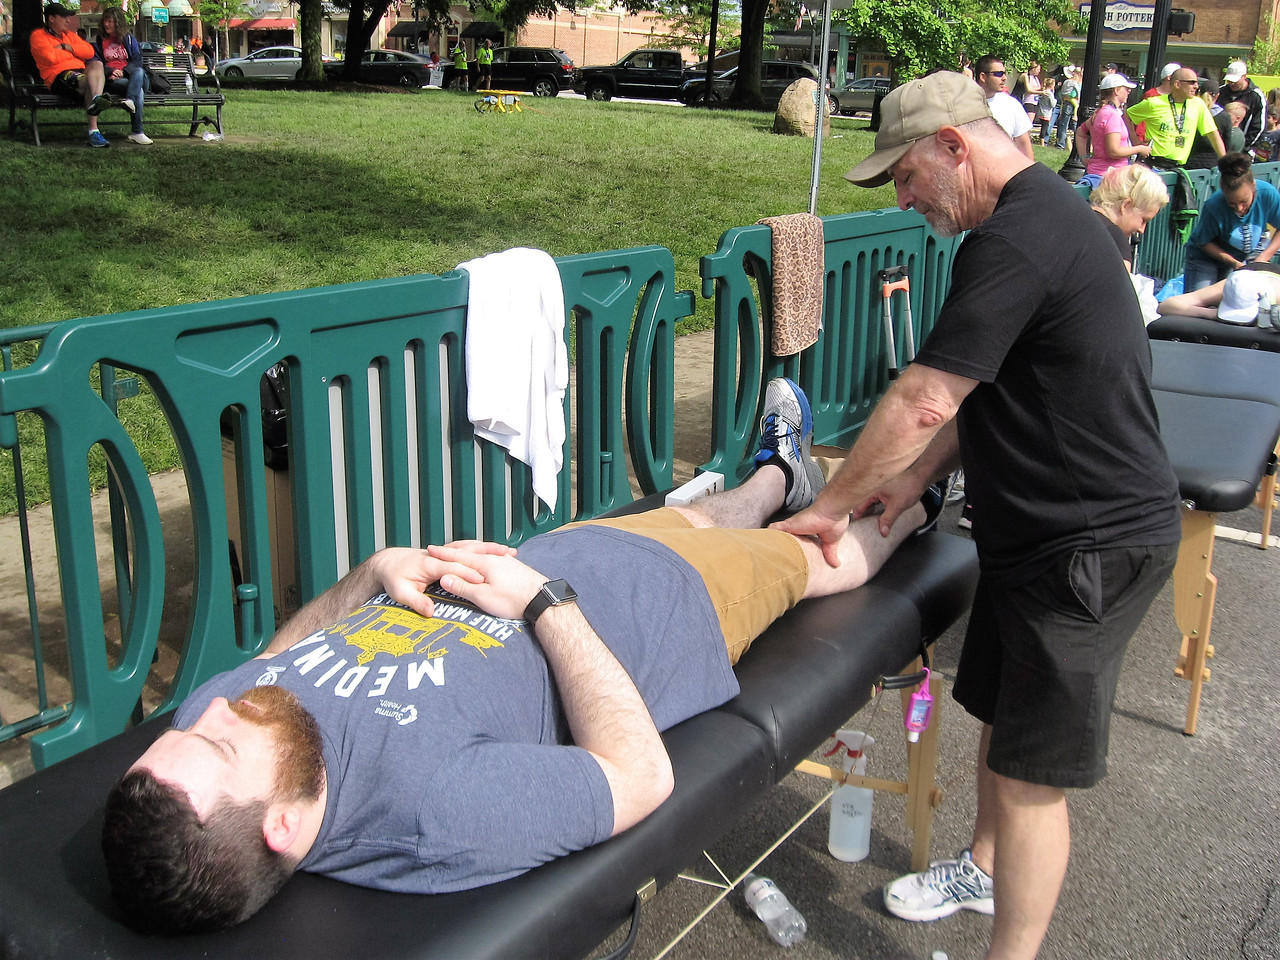 BOB SANDRICK / GAZETTE Runner Jared Anay of University Heights, who competed in a 5-kilometer race on Saturday in Medina, was rubbed down afterward by Roger Buttrick, a professional licensed massage therapist with Studio on Stone.